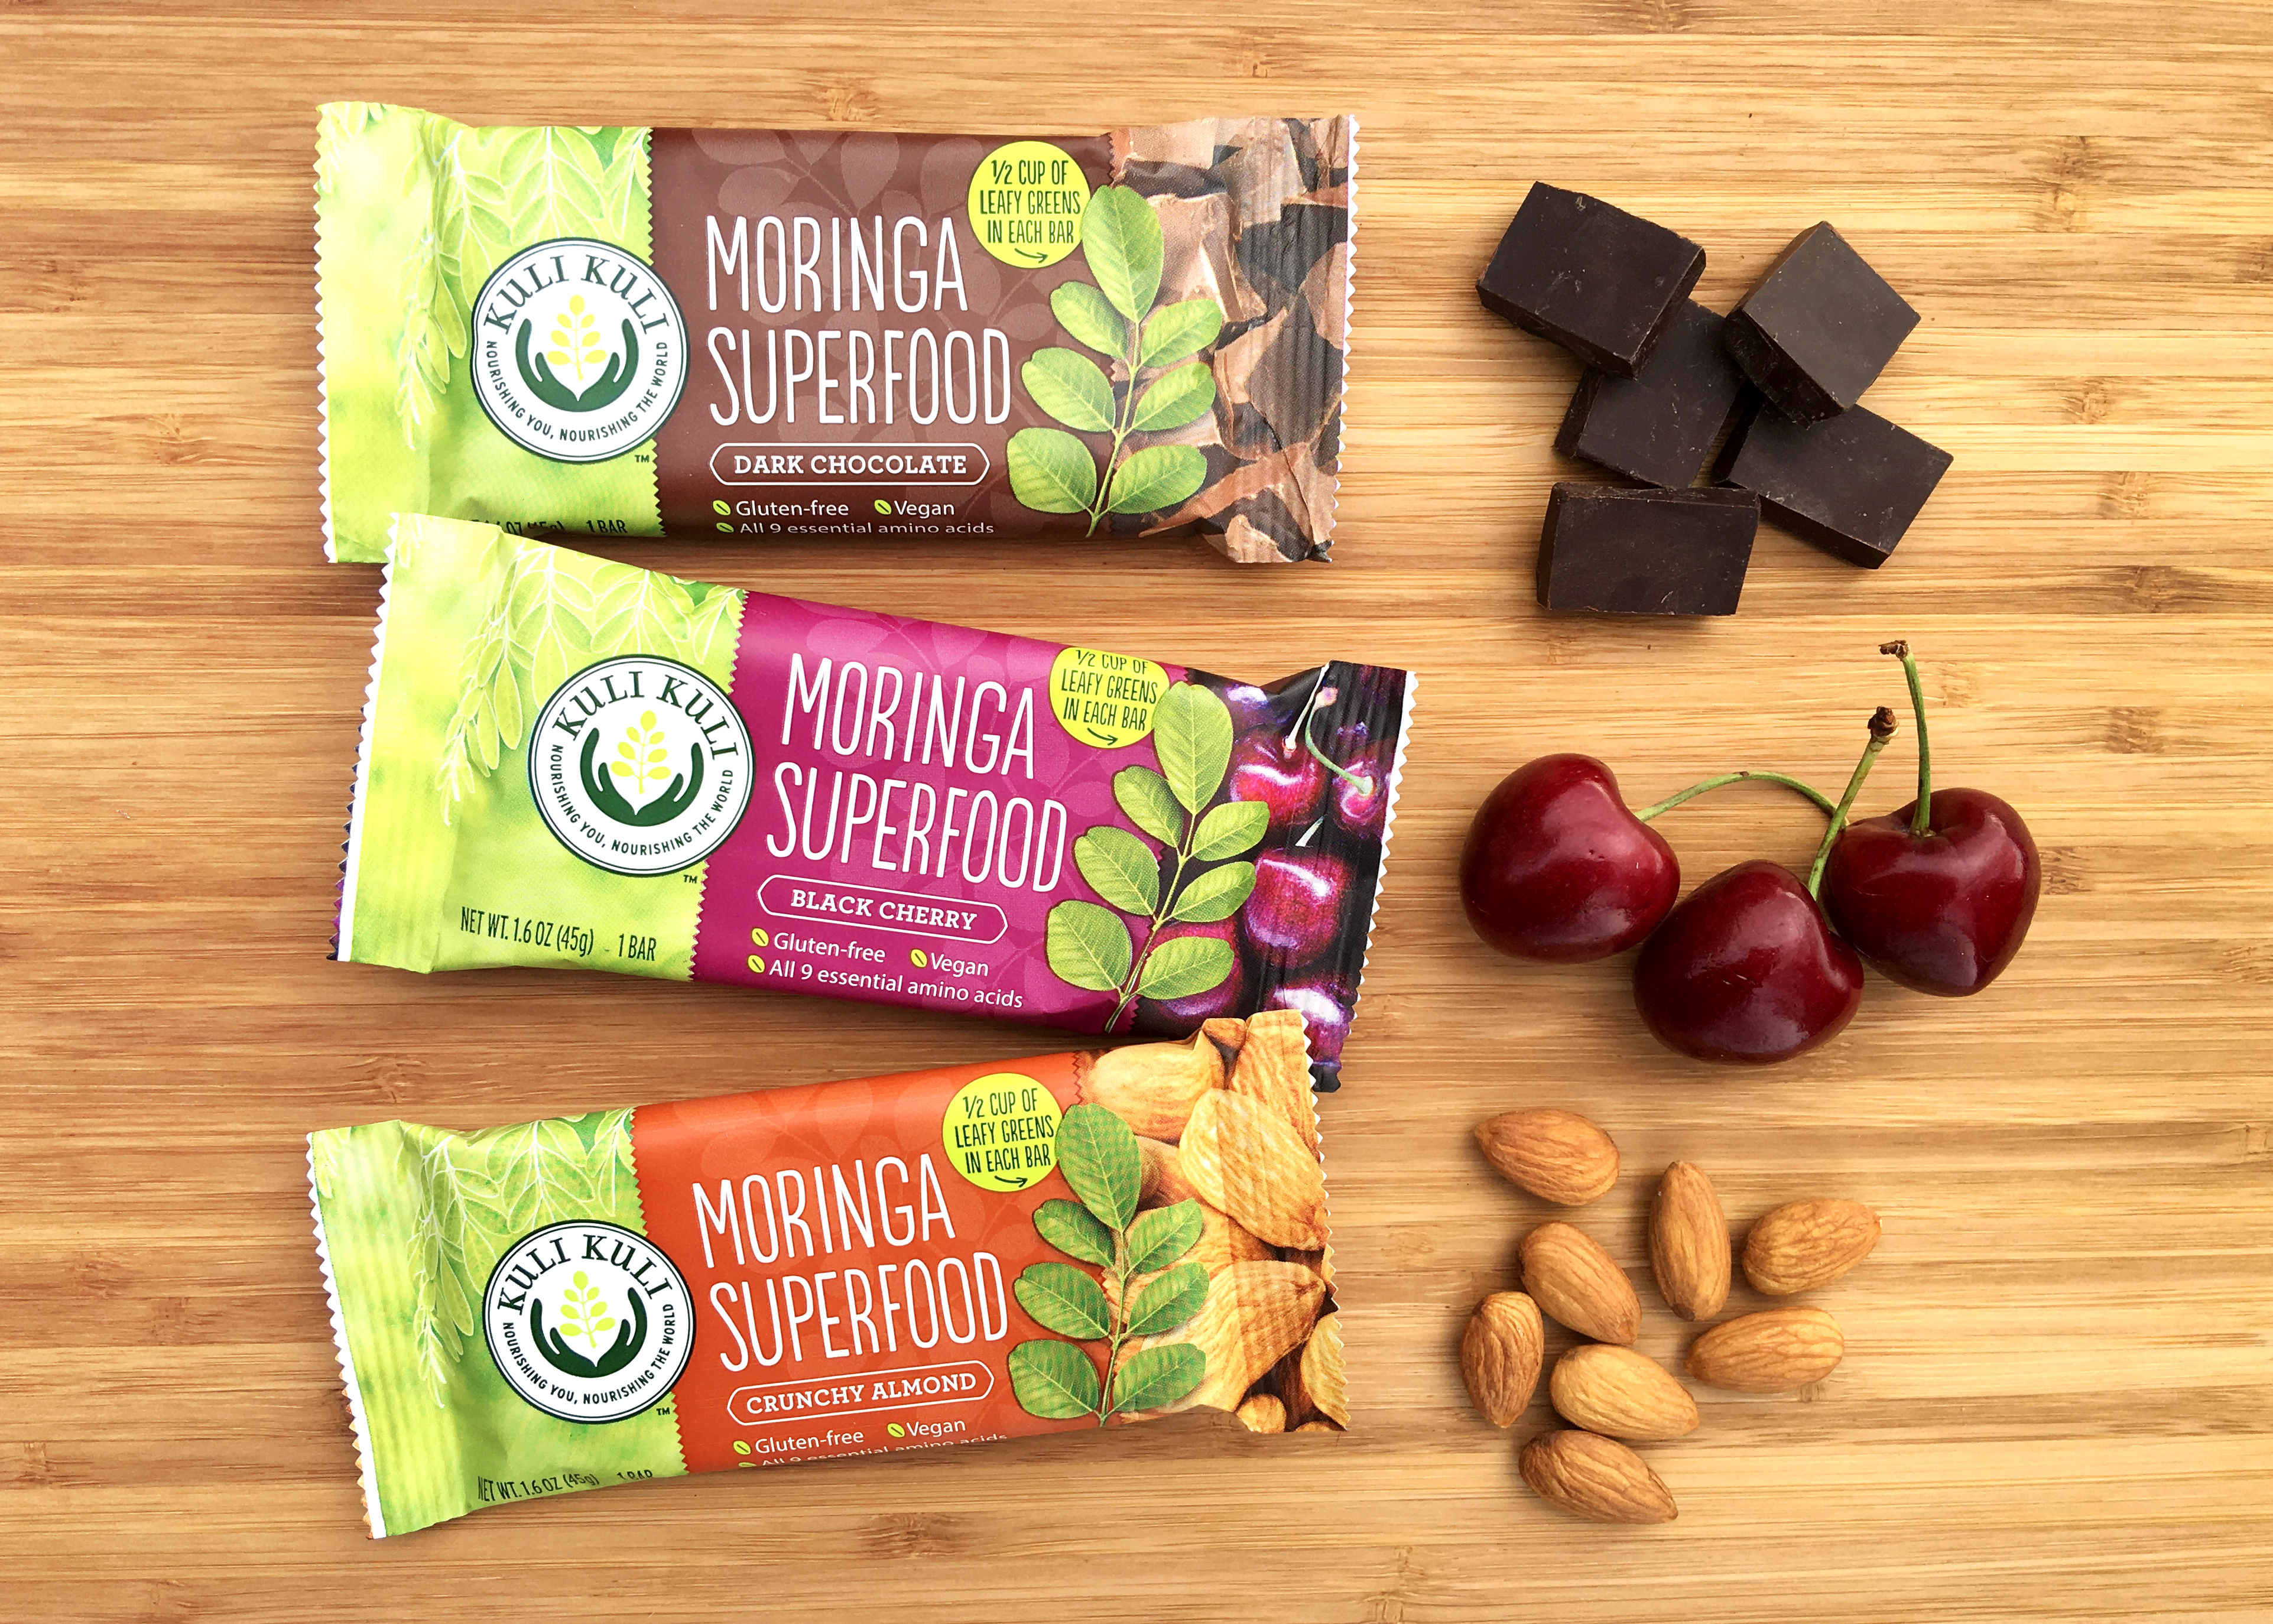 Kellogg's venture capital fund has led a $4.25 million investment in Kuli Kuli, a manufacturer and distributor of moringa-based products.